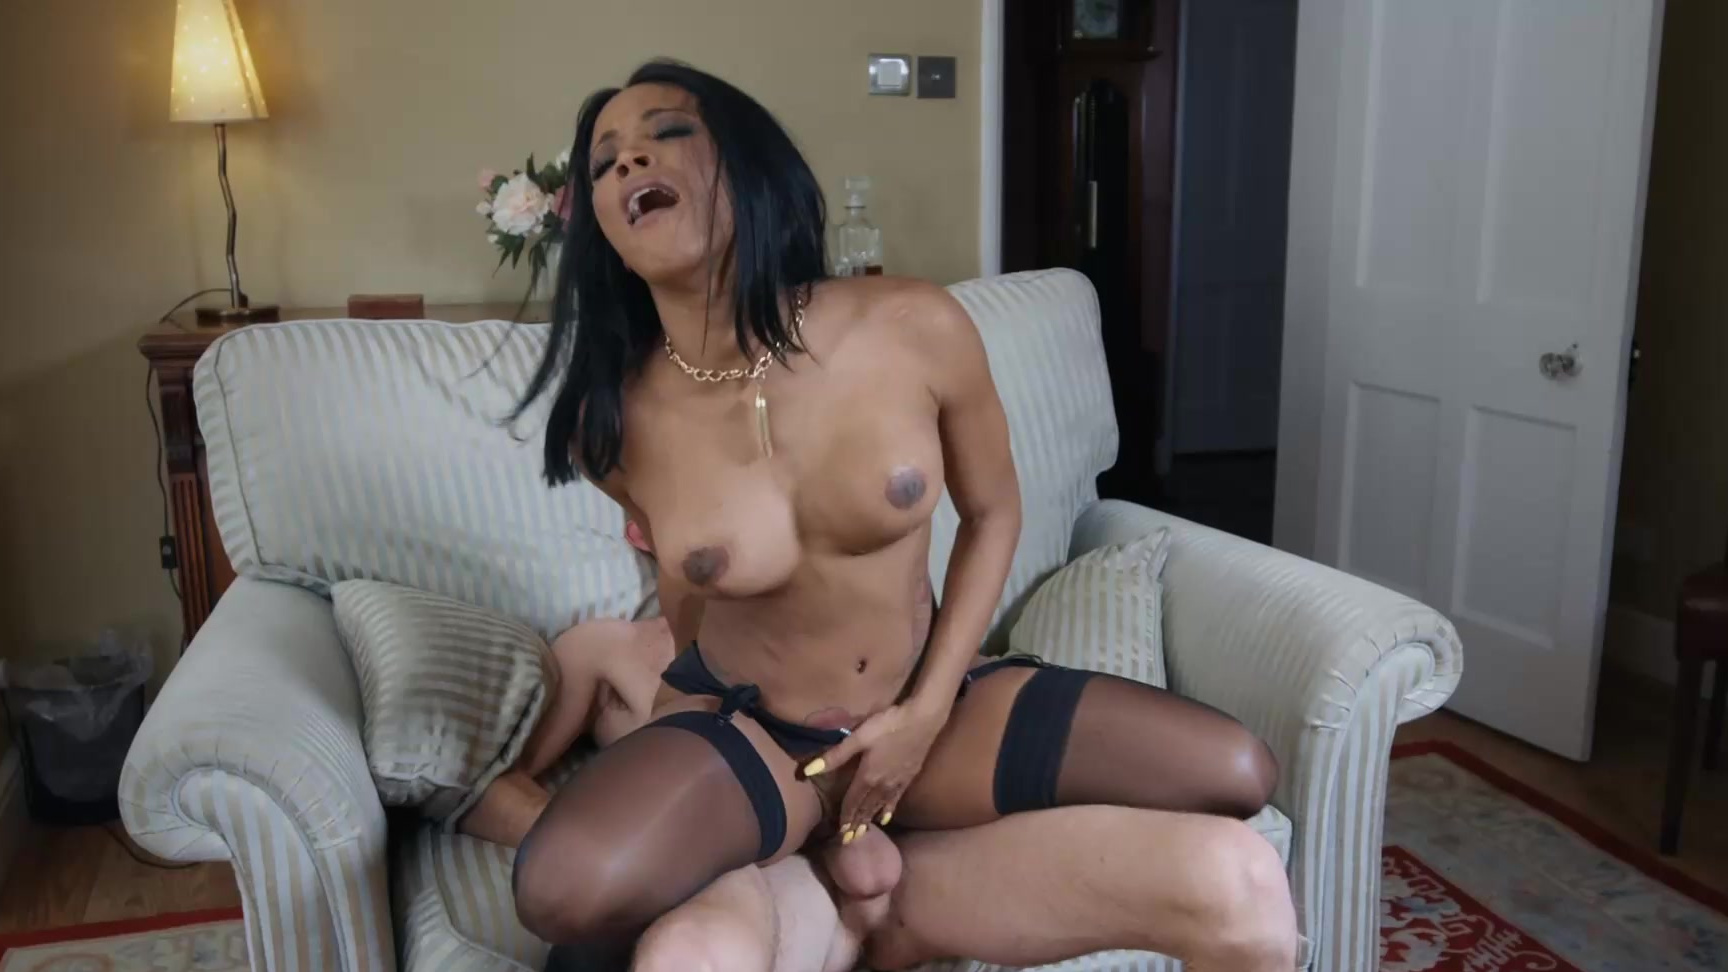 join amateur bisexual threesome with shemale sorry, not absolutely that